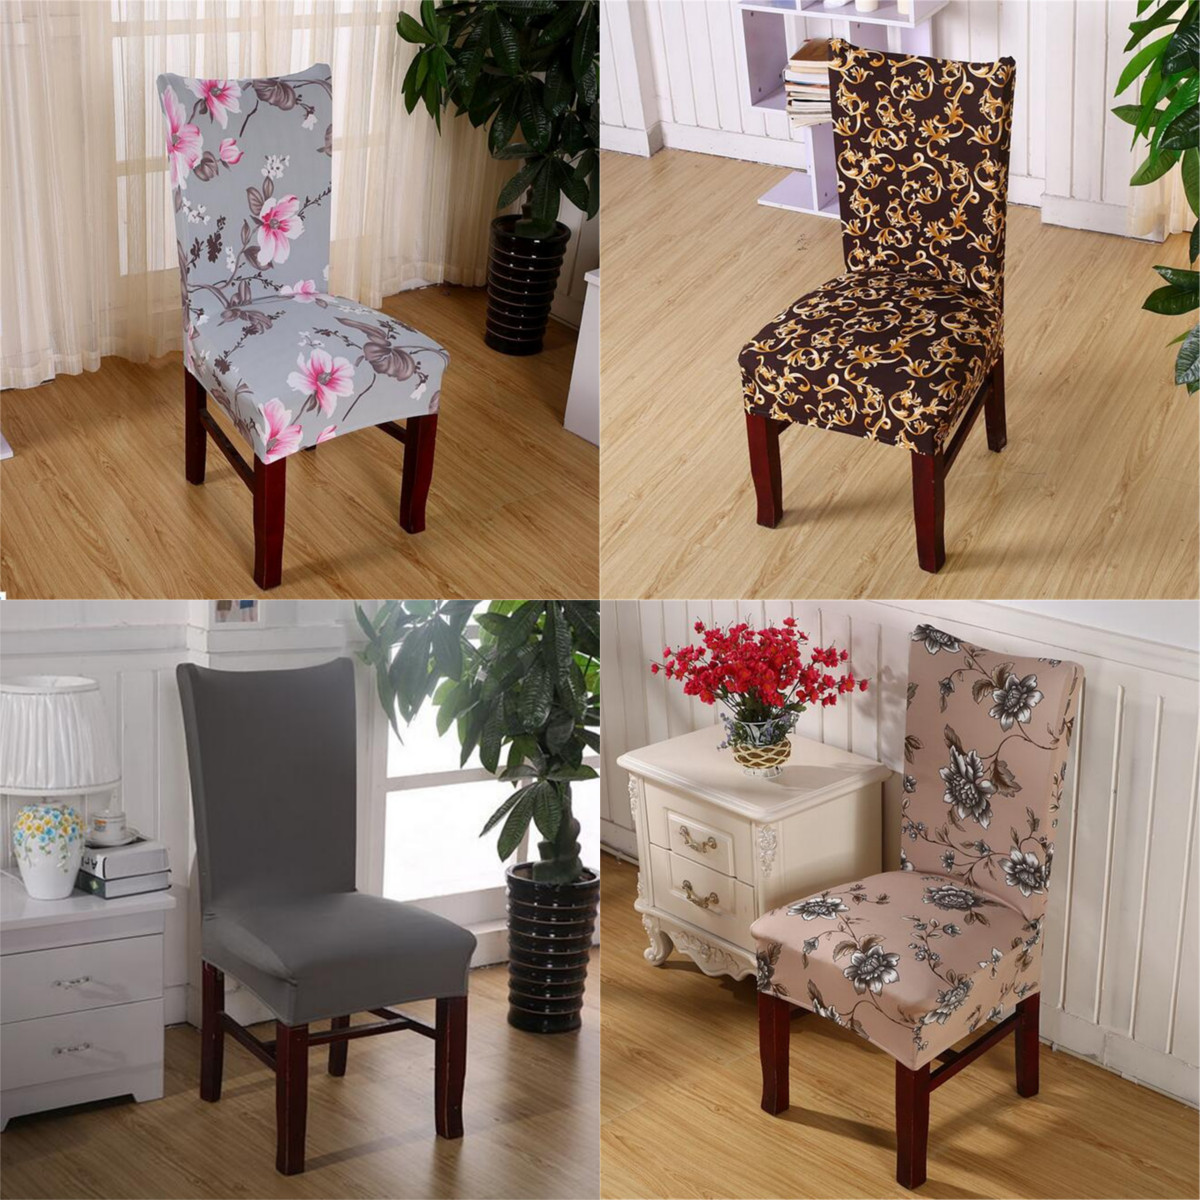 dining chair covers for home drafting table chairs staples meigar spandex soft super fit stretch removable short protector cover banquet